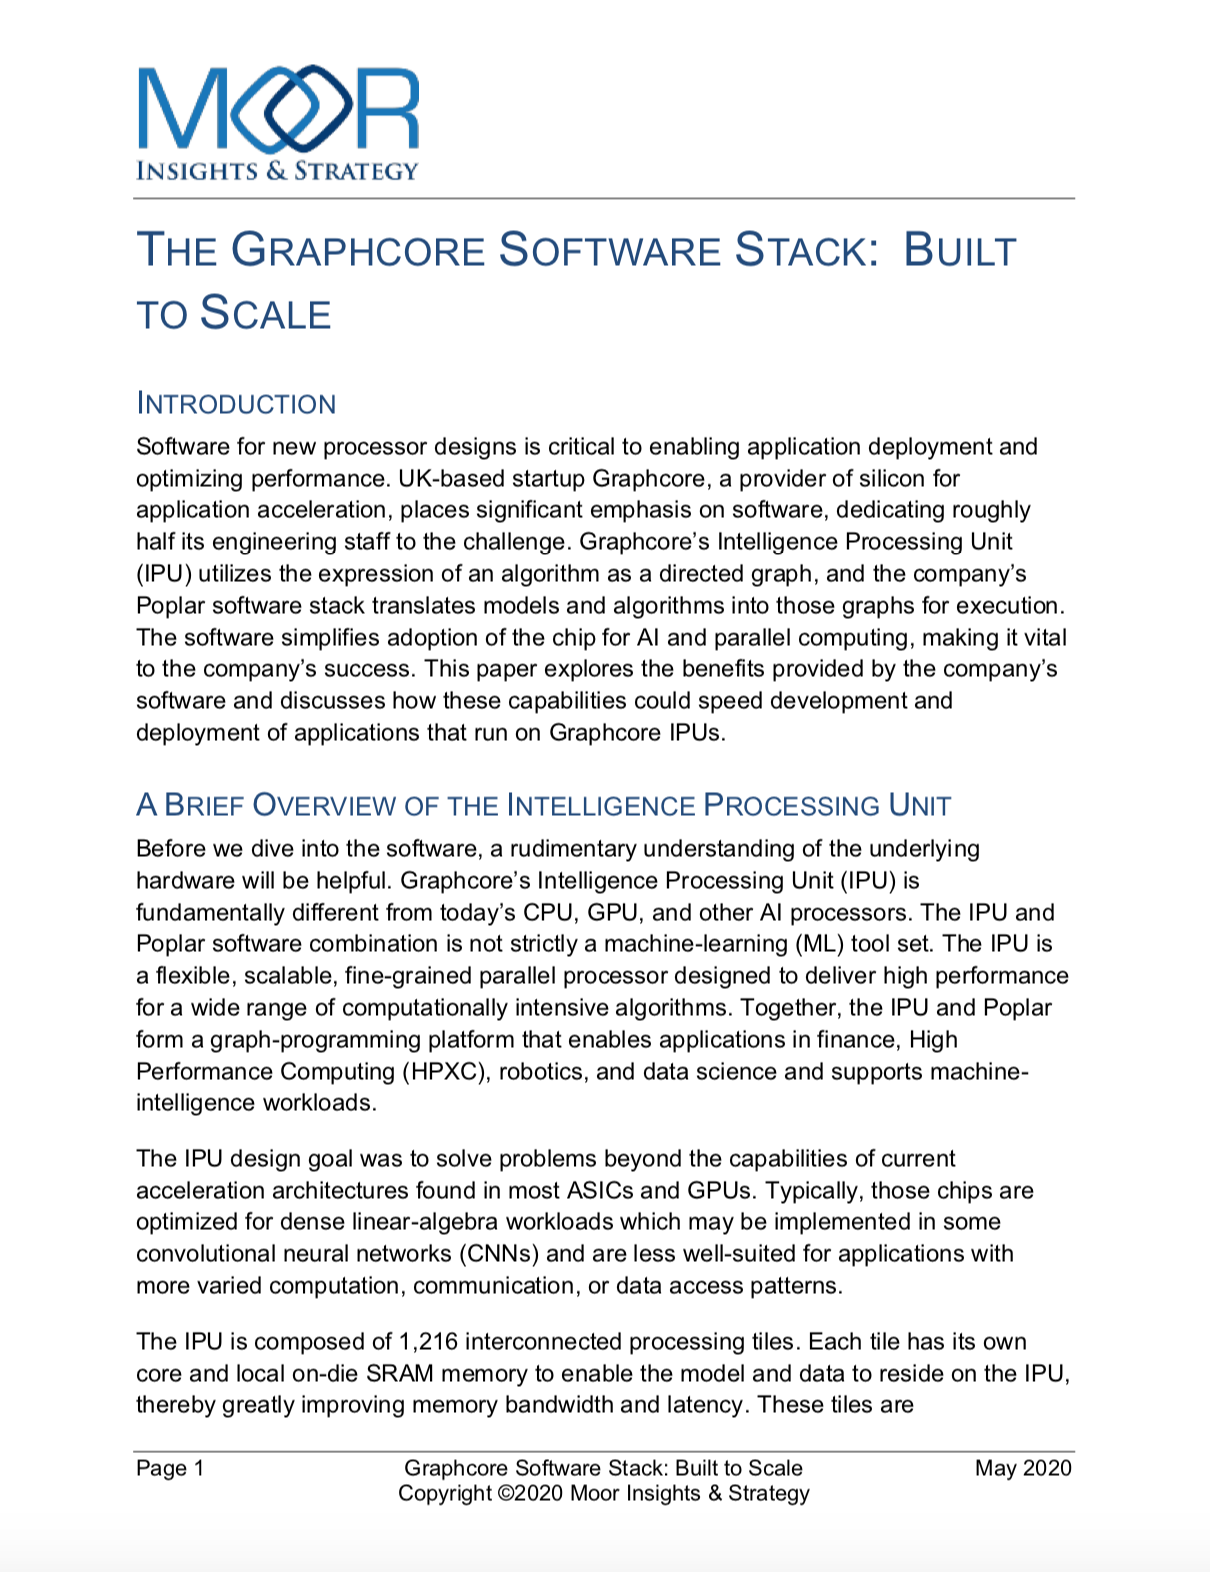 Moor Insights - Graphcore Software Stack: Built to Scale